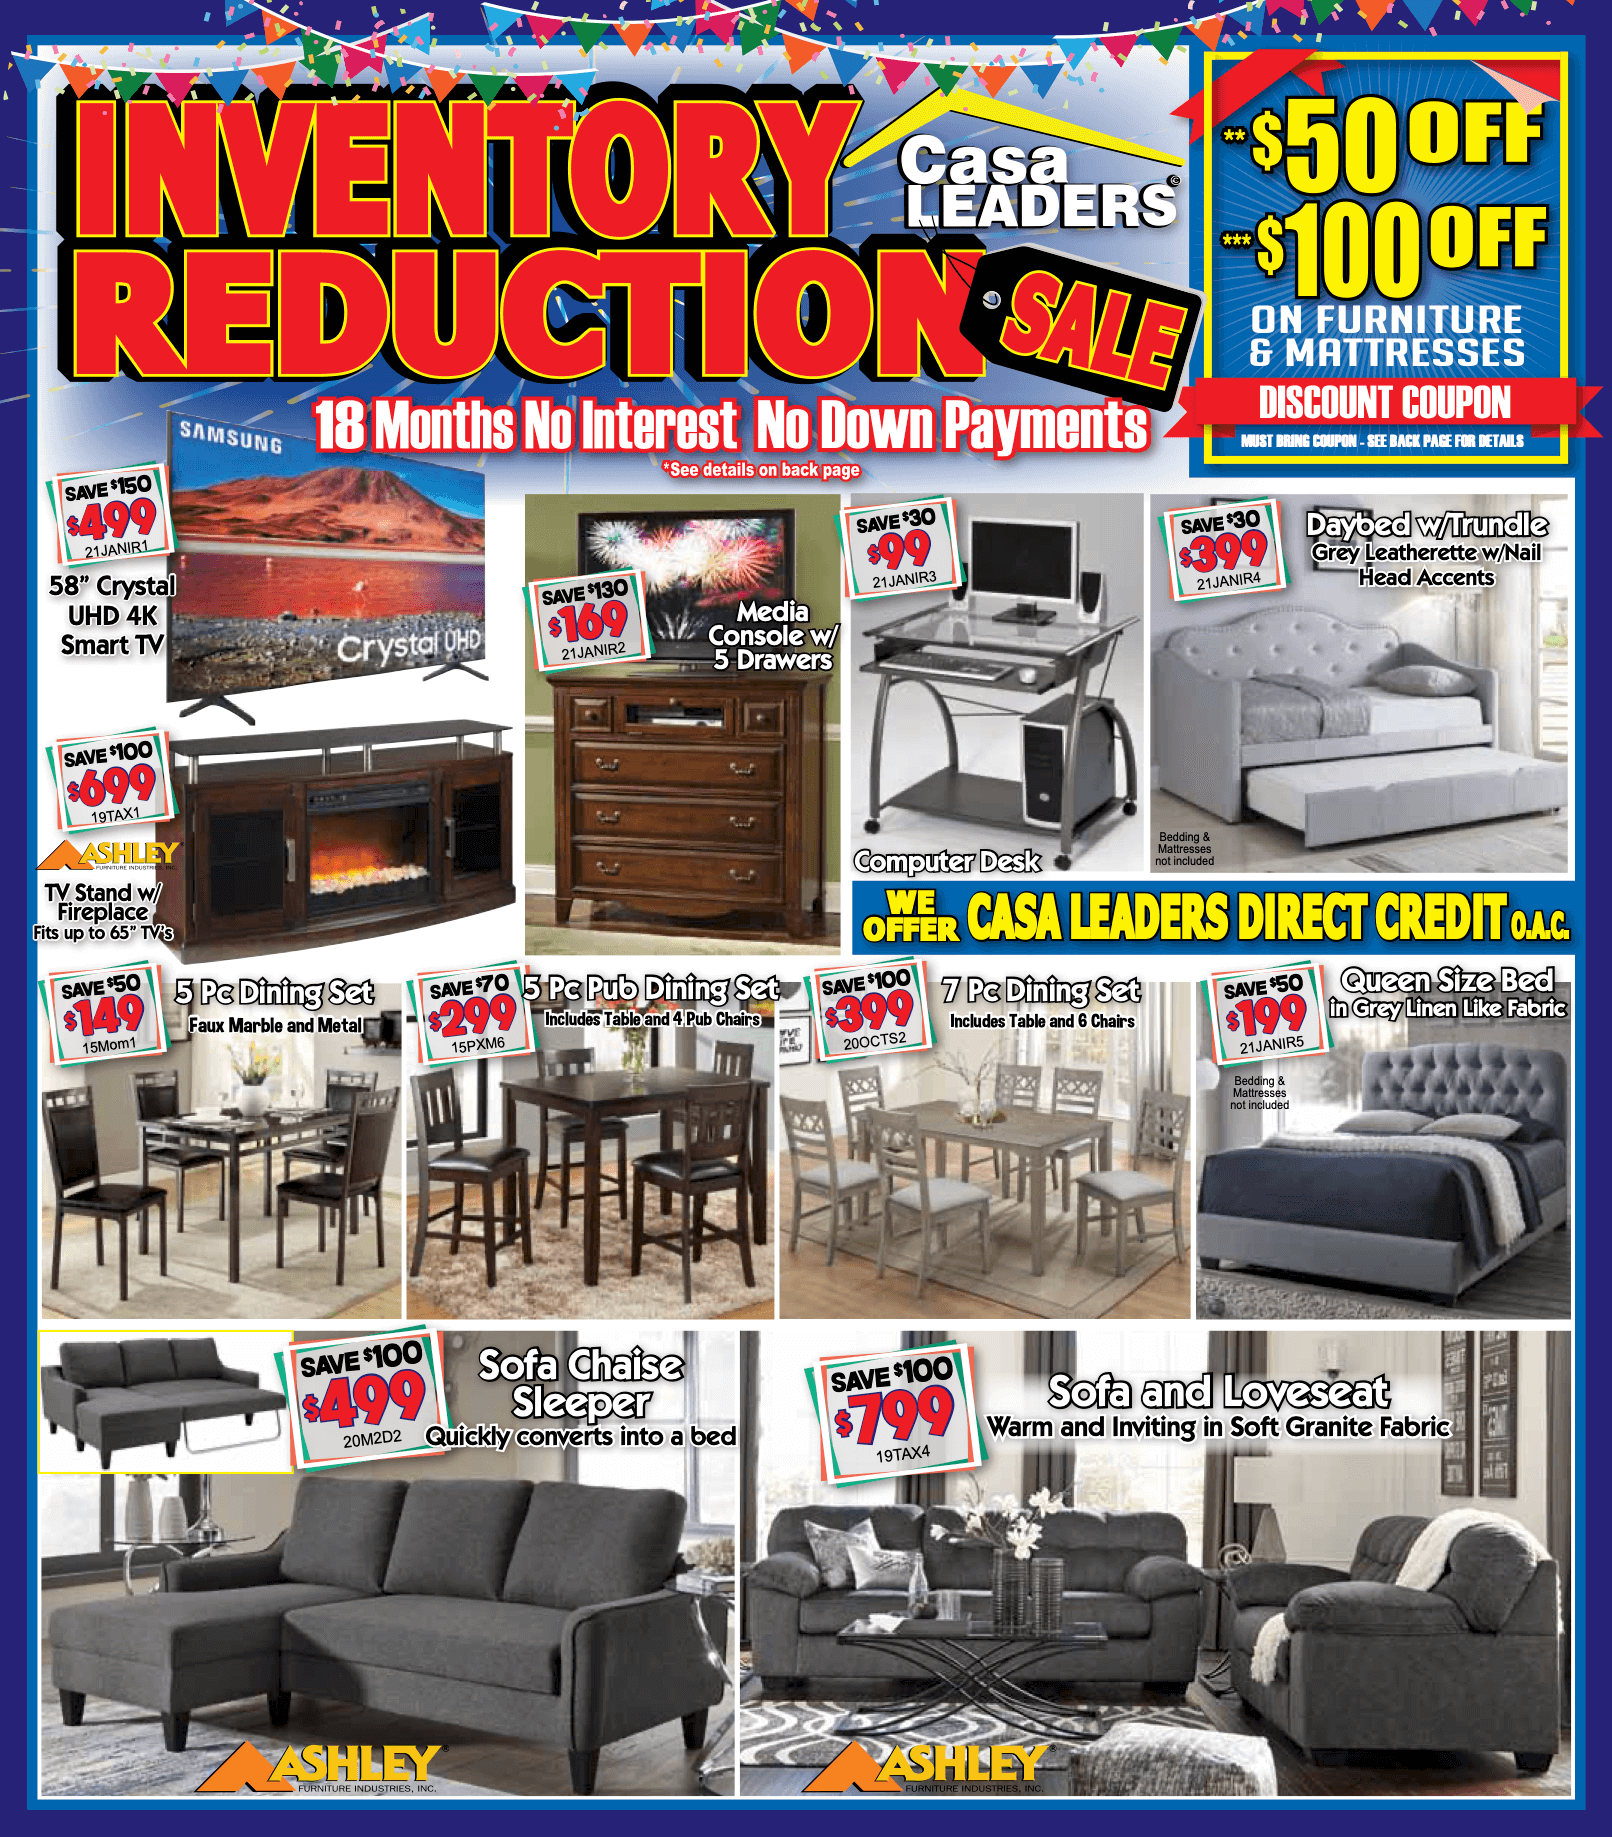 Inventory Reduction Sale page 1 mailer